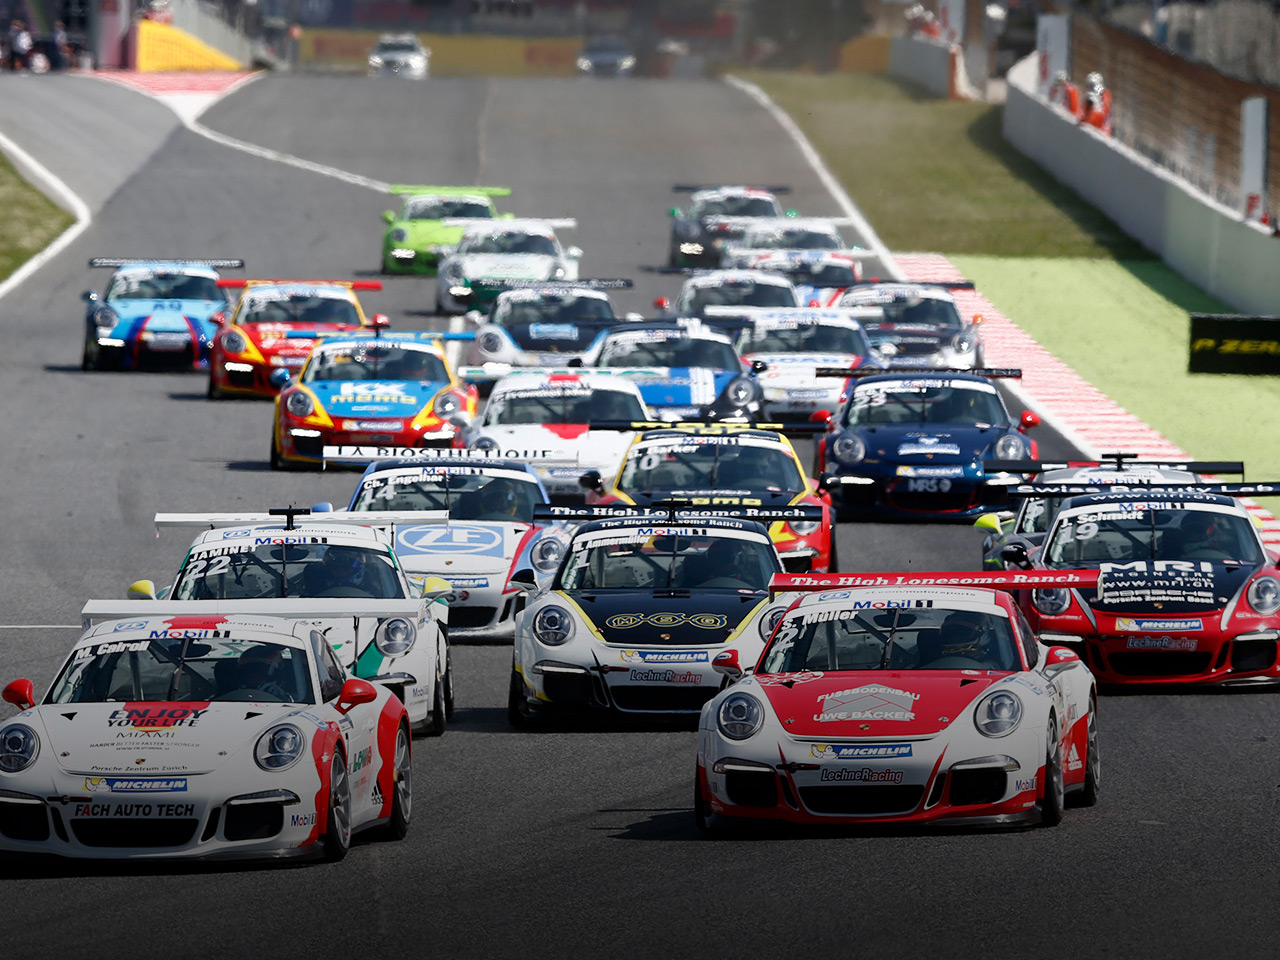 Porsche 25 years of Porsche Supercup.